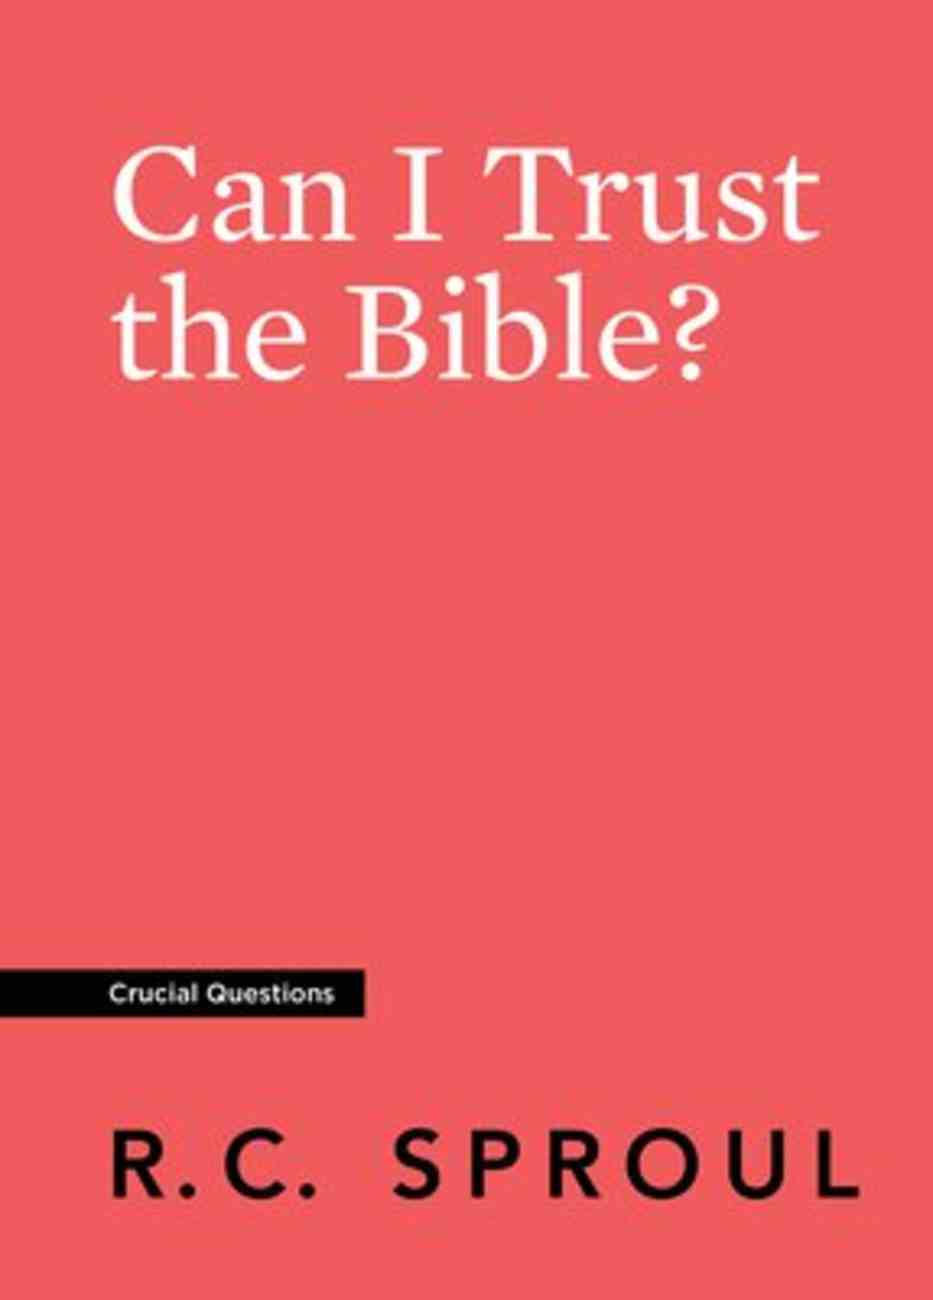 Can I Trust the Bible? (#02 in Crucial Questions Series) Paperback